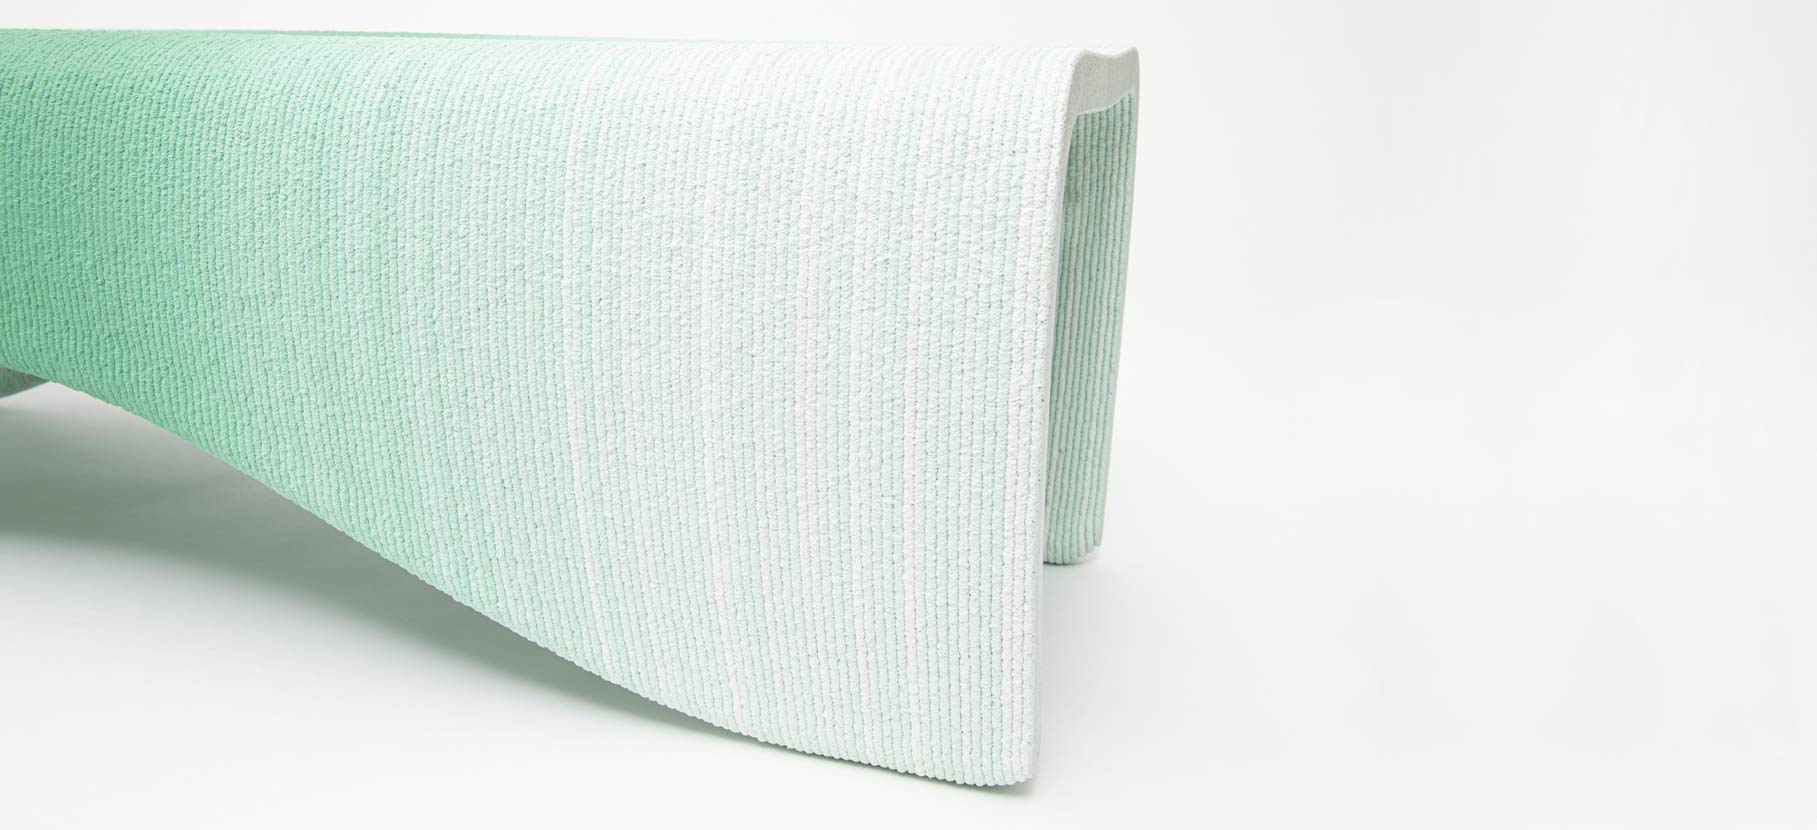 Gradient_Bench_Small_4